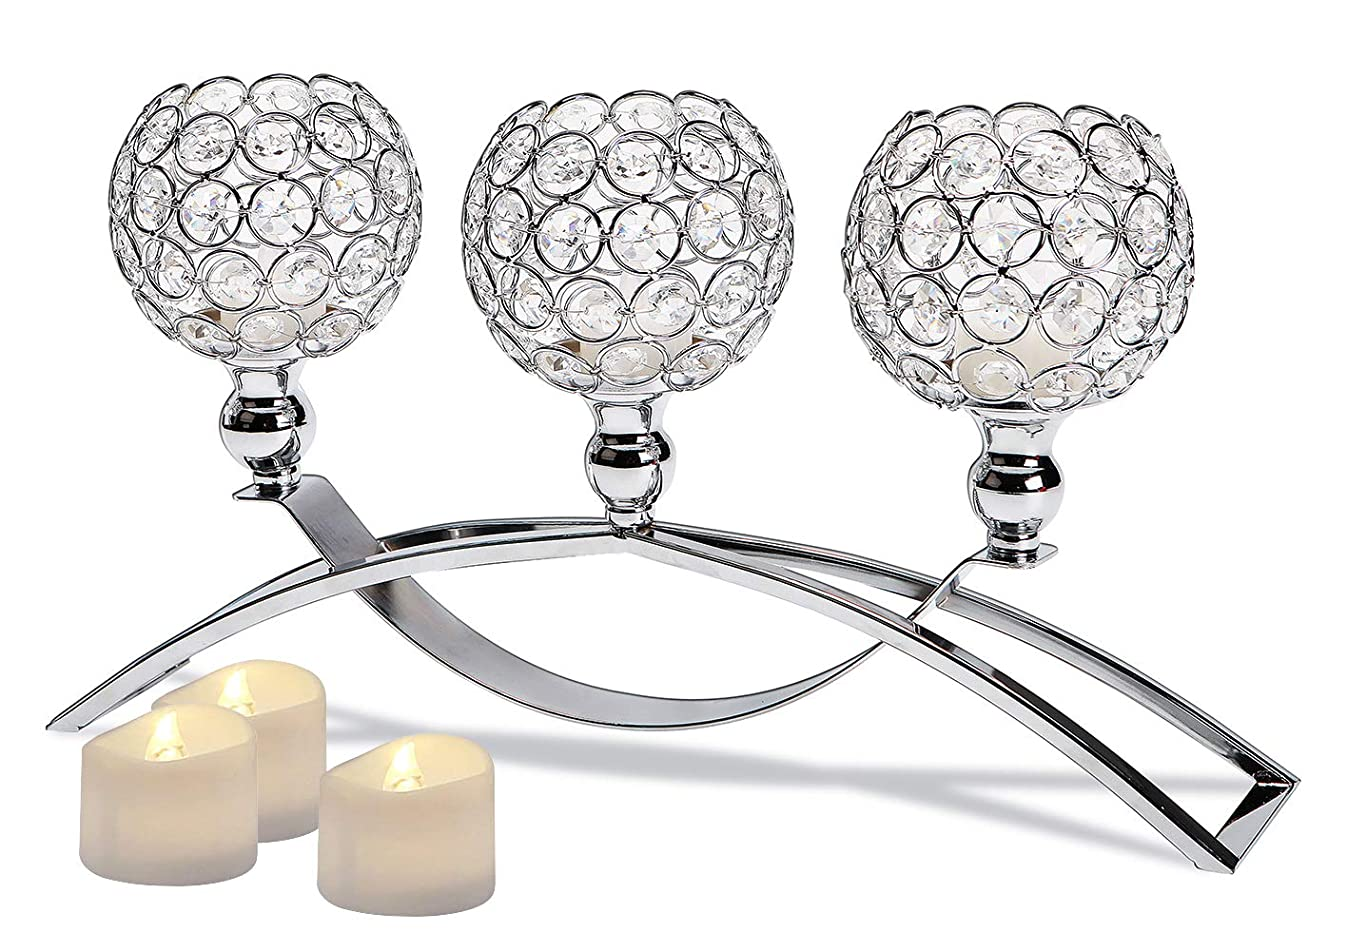 Manvi Crystal Candle Holders, 3-Candles Silver Candlestick Holders/Candelabras for Wedding Dinning Room Table Centerpieces Decor,Christmas Housewarming Gifts